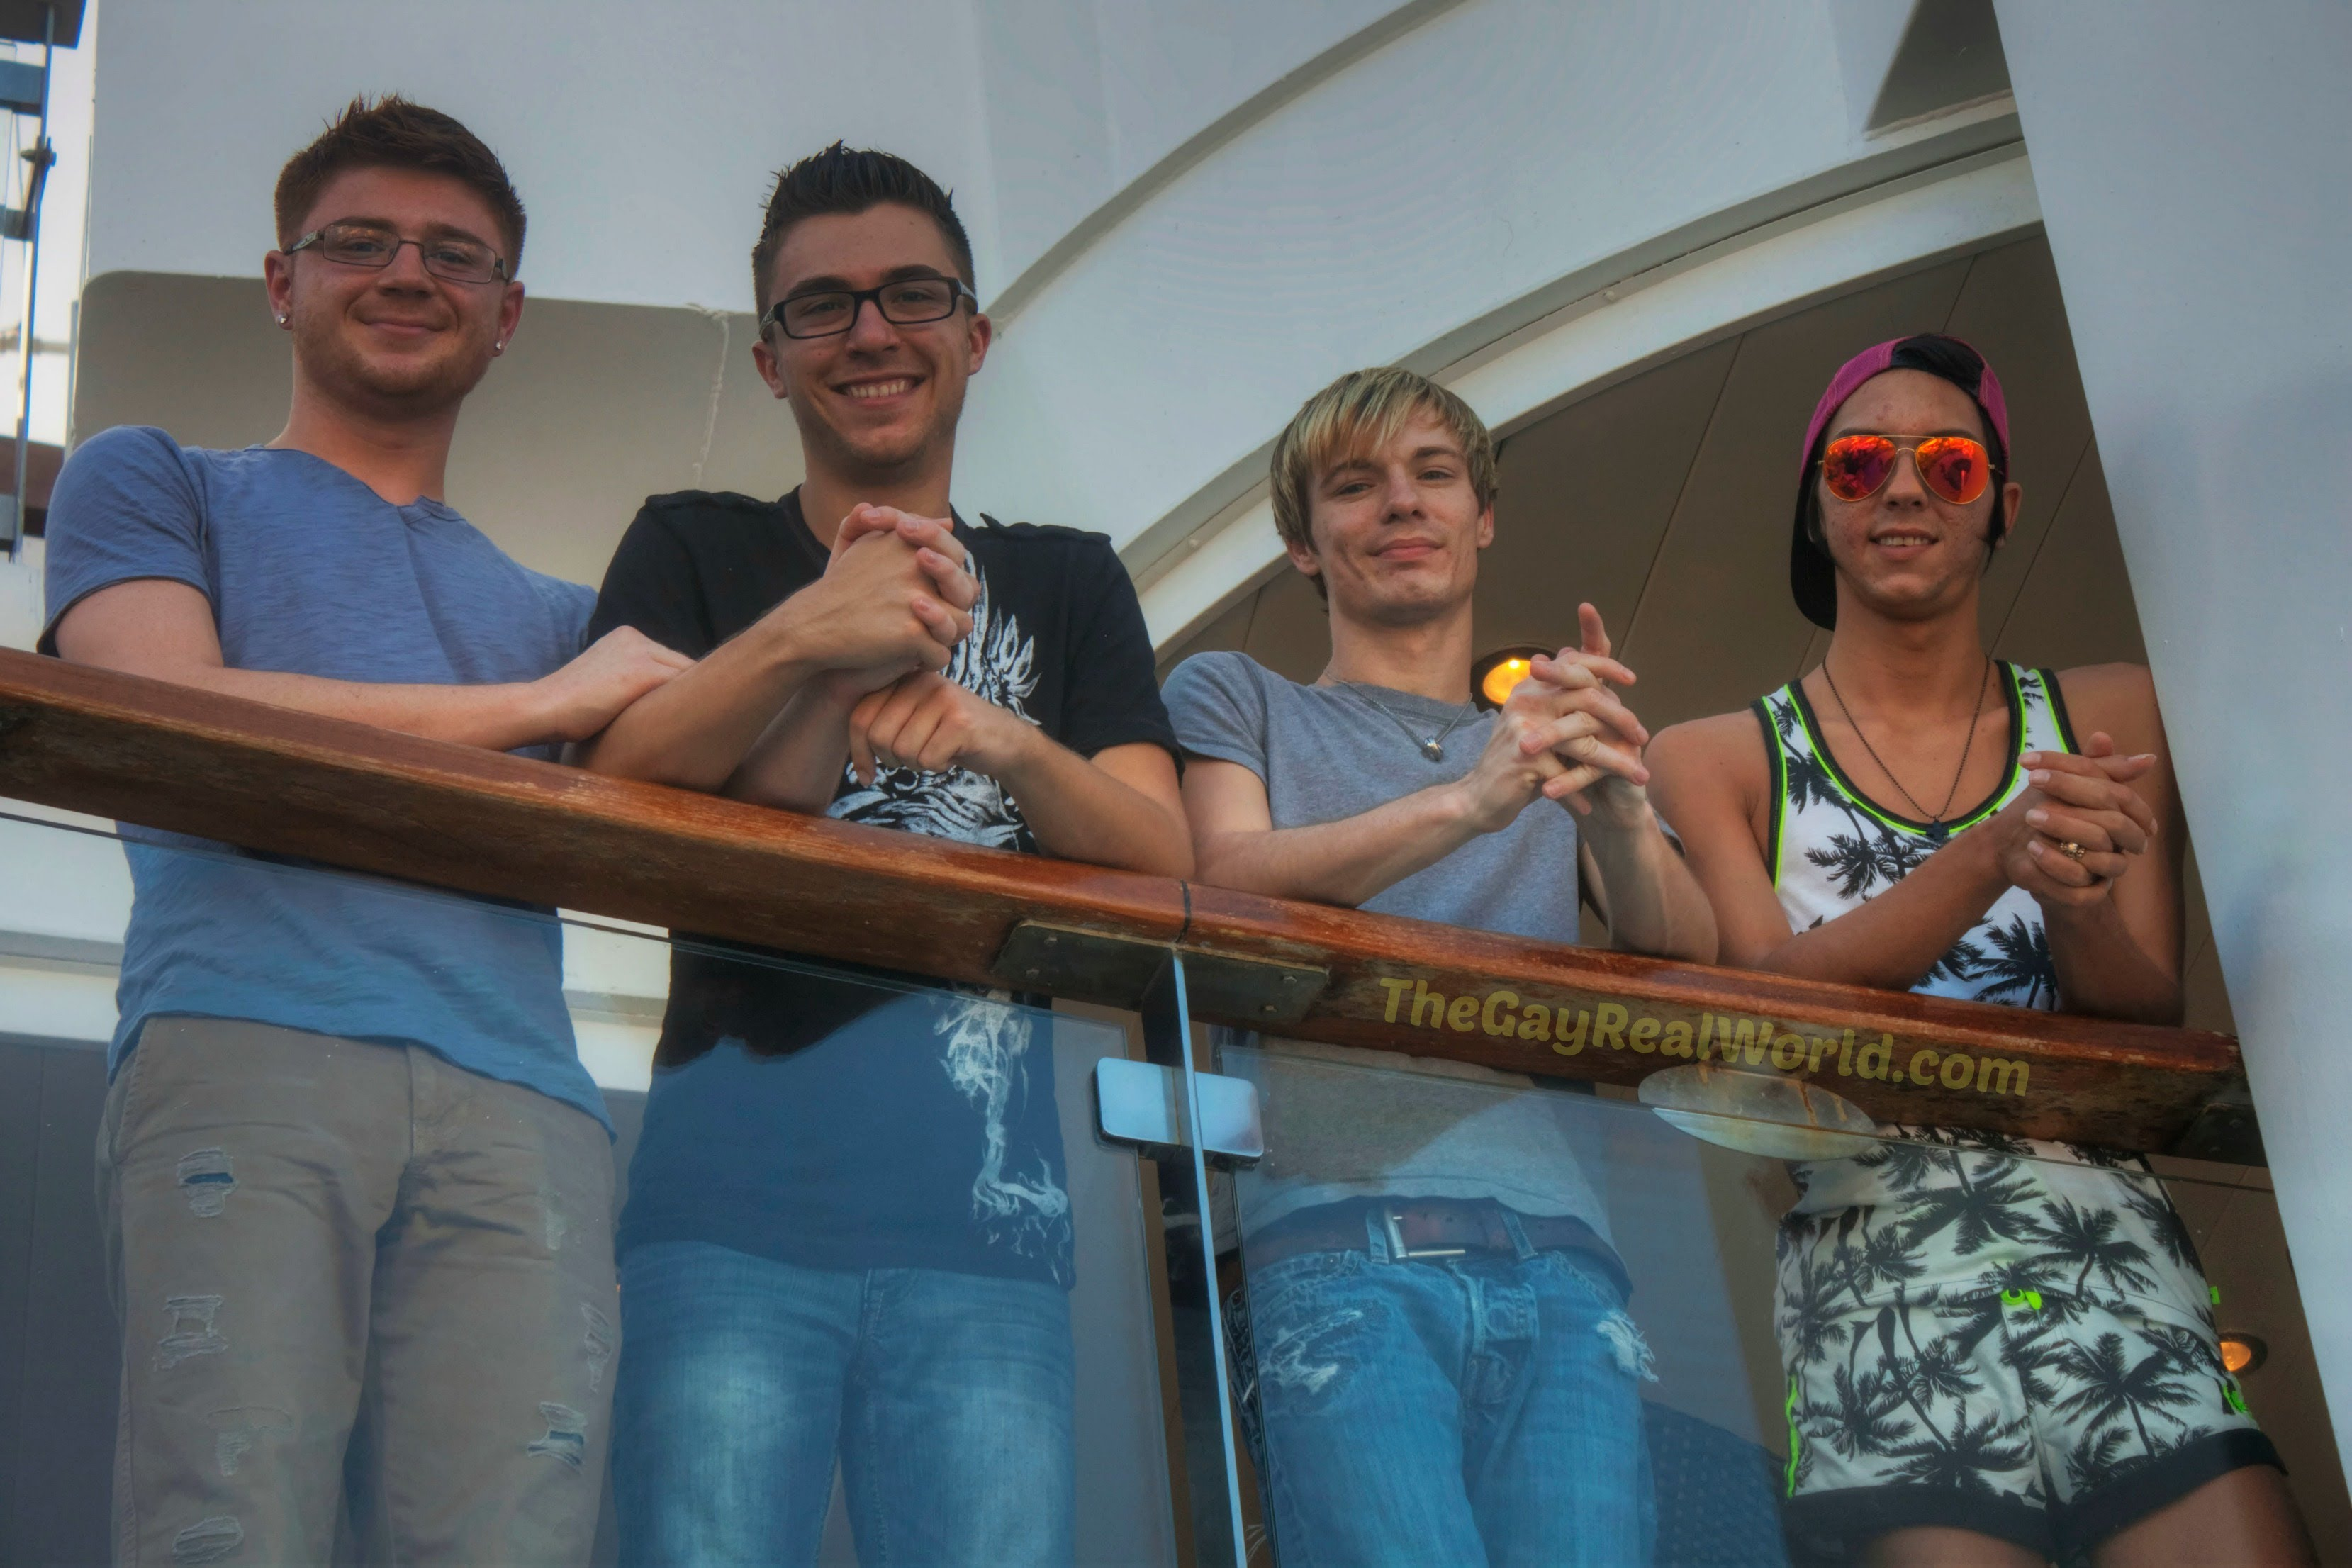 The Gay Real World Cruise Week Kicks Off Live Here On You Tube